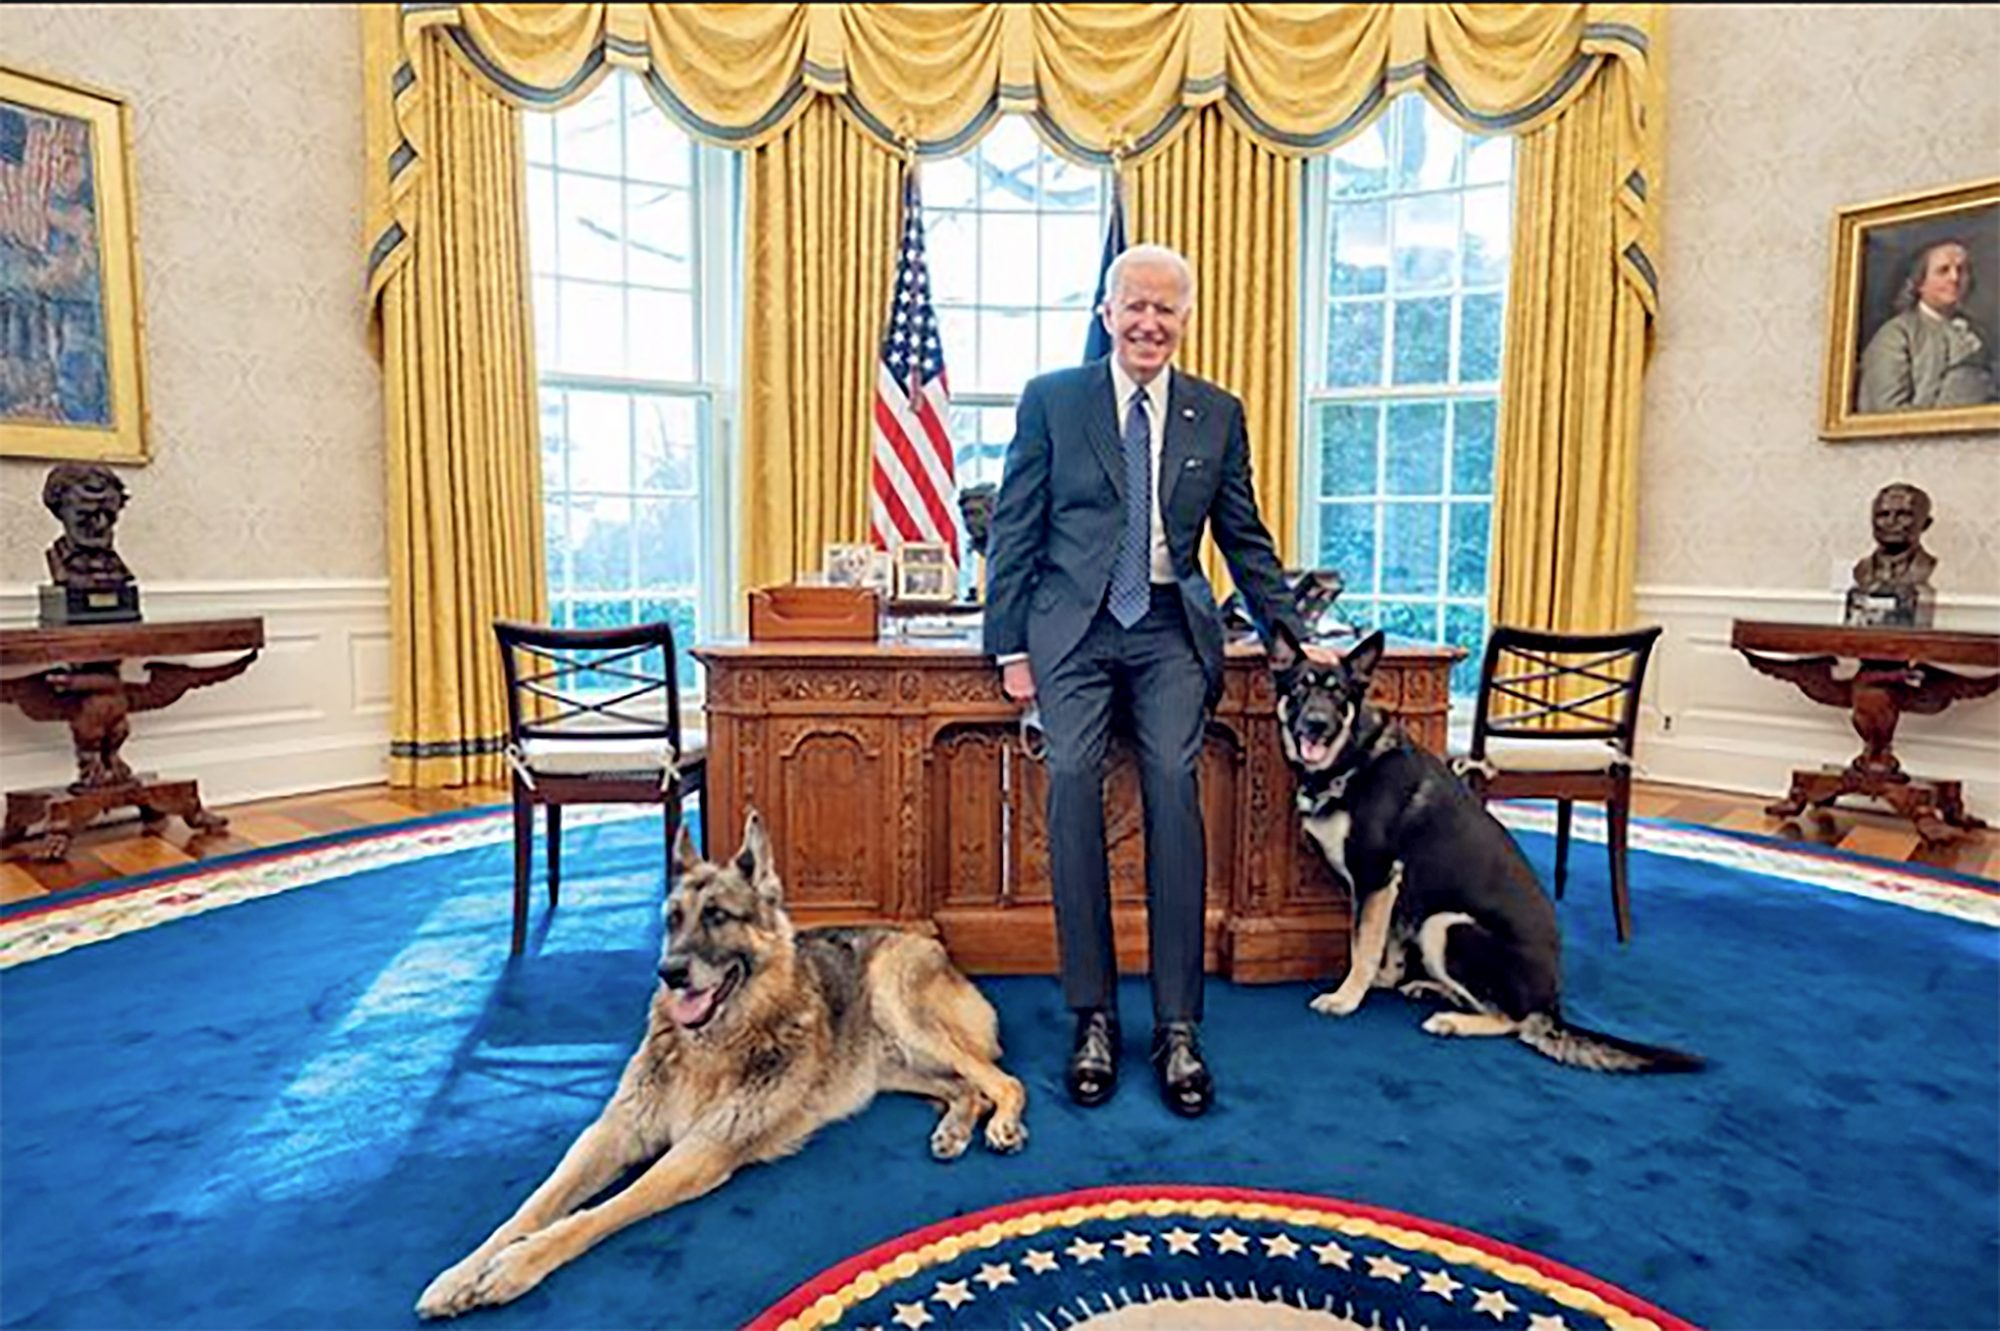 Biden with Major and Champ in the Oval Office